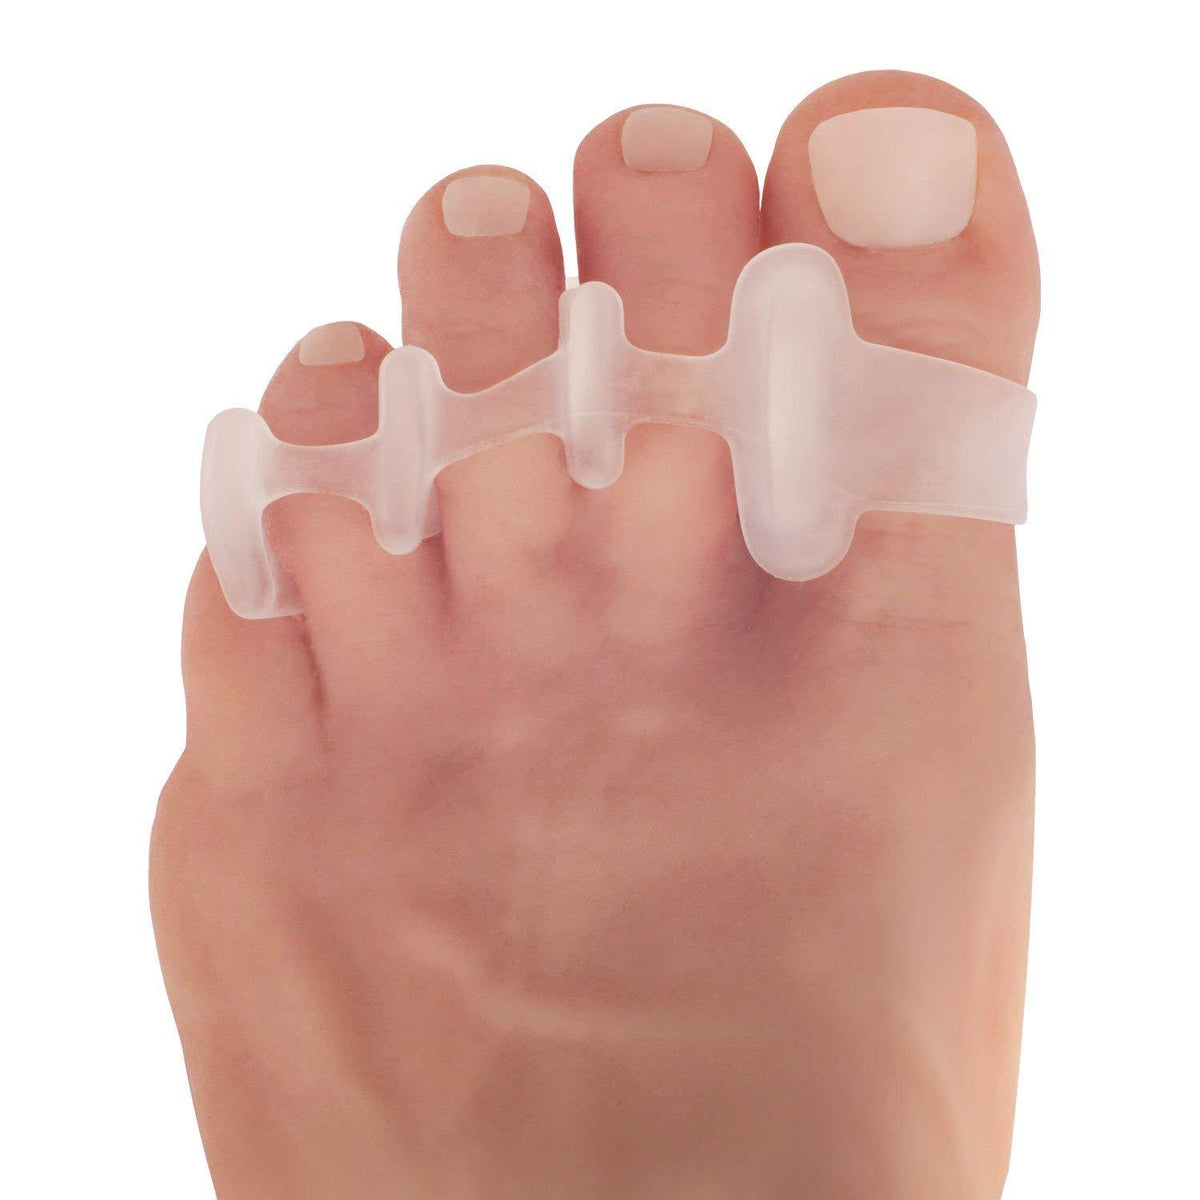 Dr. Frederick's Original Deluxe Toe Spreaders -- 2 Pieces - for Hammertoes, Claw Toes, Corns, and Foot Cramps Foot Pain Dr. Frederick's Original